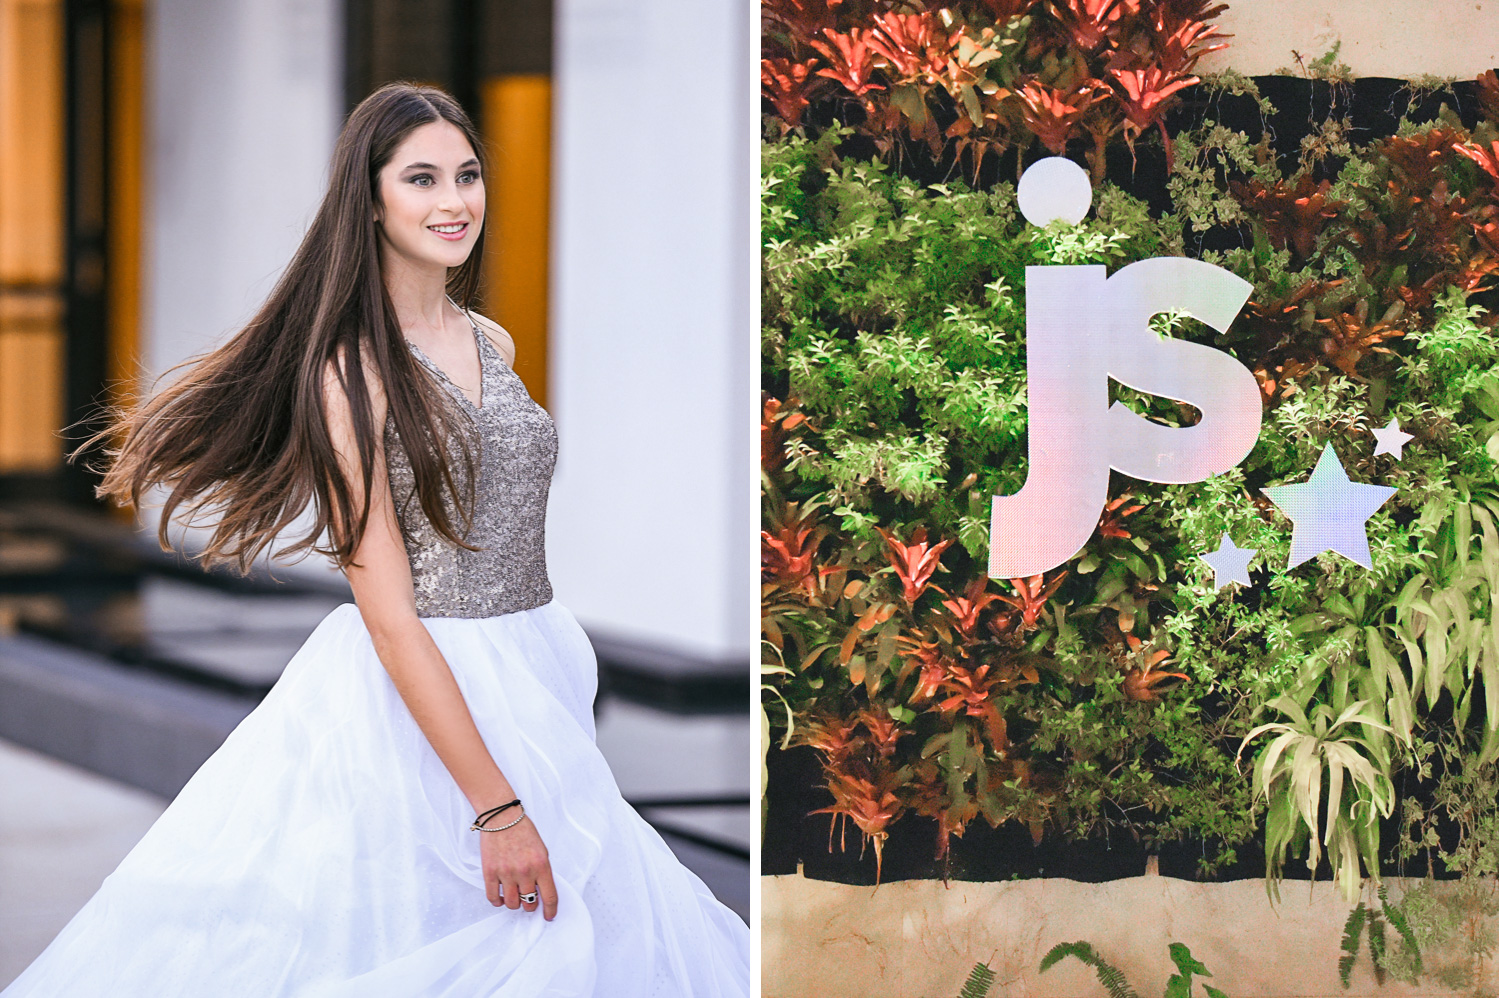 custom name sign for Trendy Decor Bat Mitzvah at St Andrews Country Club by Domino Arts Photography